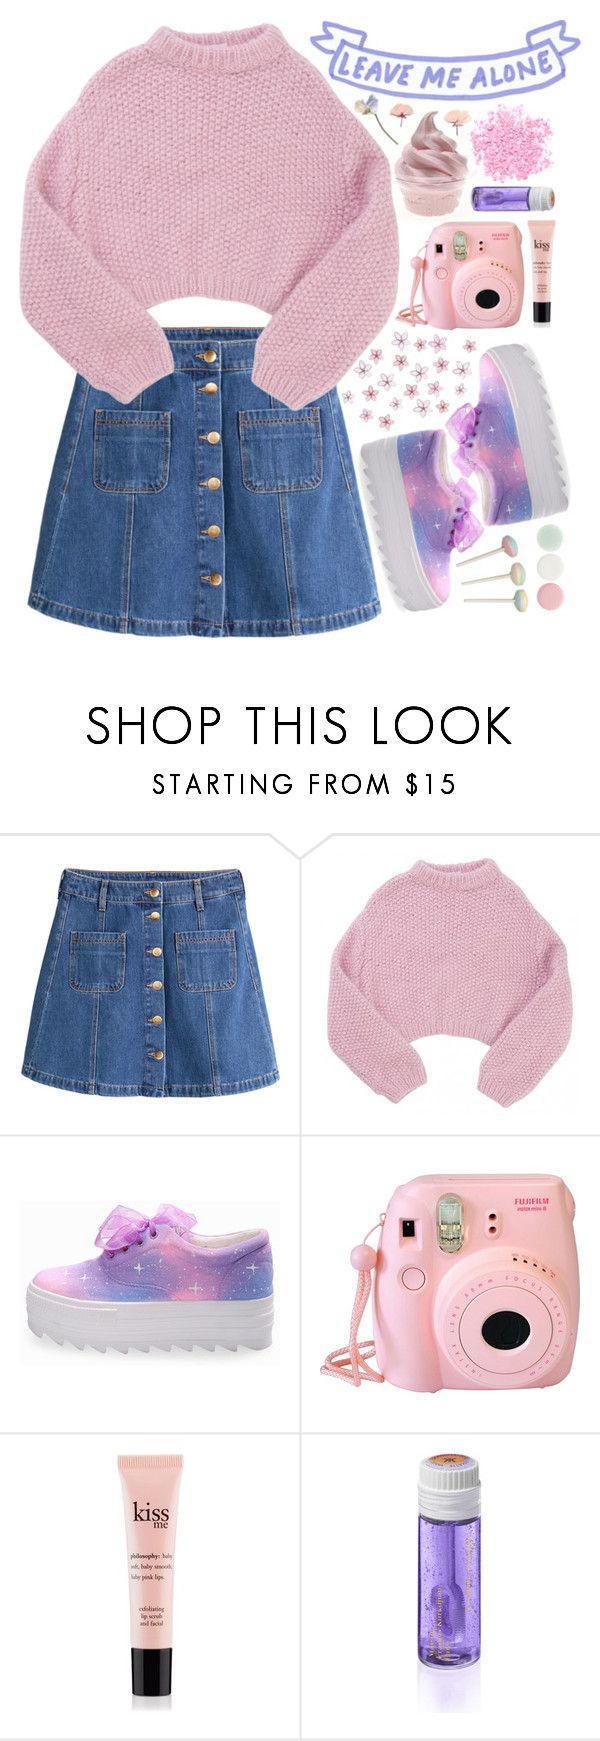 """//Dollhouse - Melanie Martinez\\"" by holographicbubble ❤ liked on Polyvore featuring H&M, Lala Berlin, philosophy, Maison Francis Kurkdjian, Nails Inc., women's clothing, women's fashion, women, female and woman"